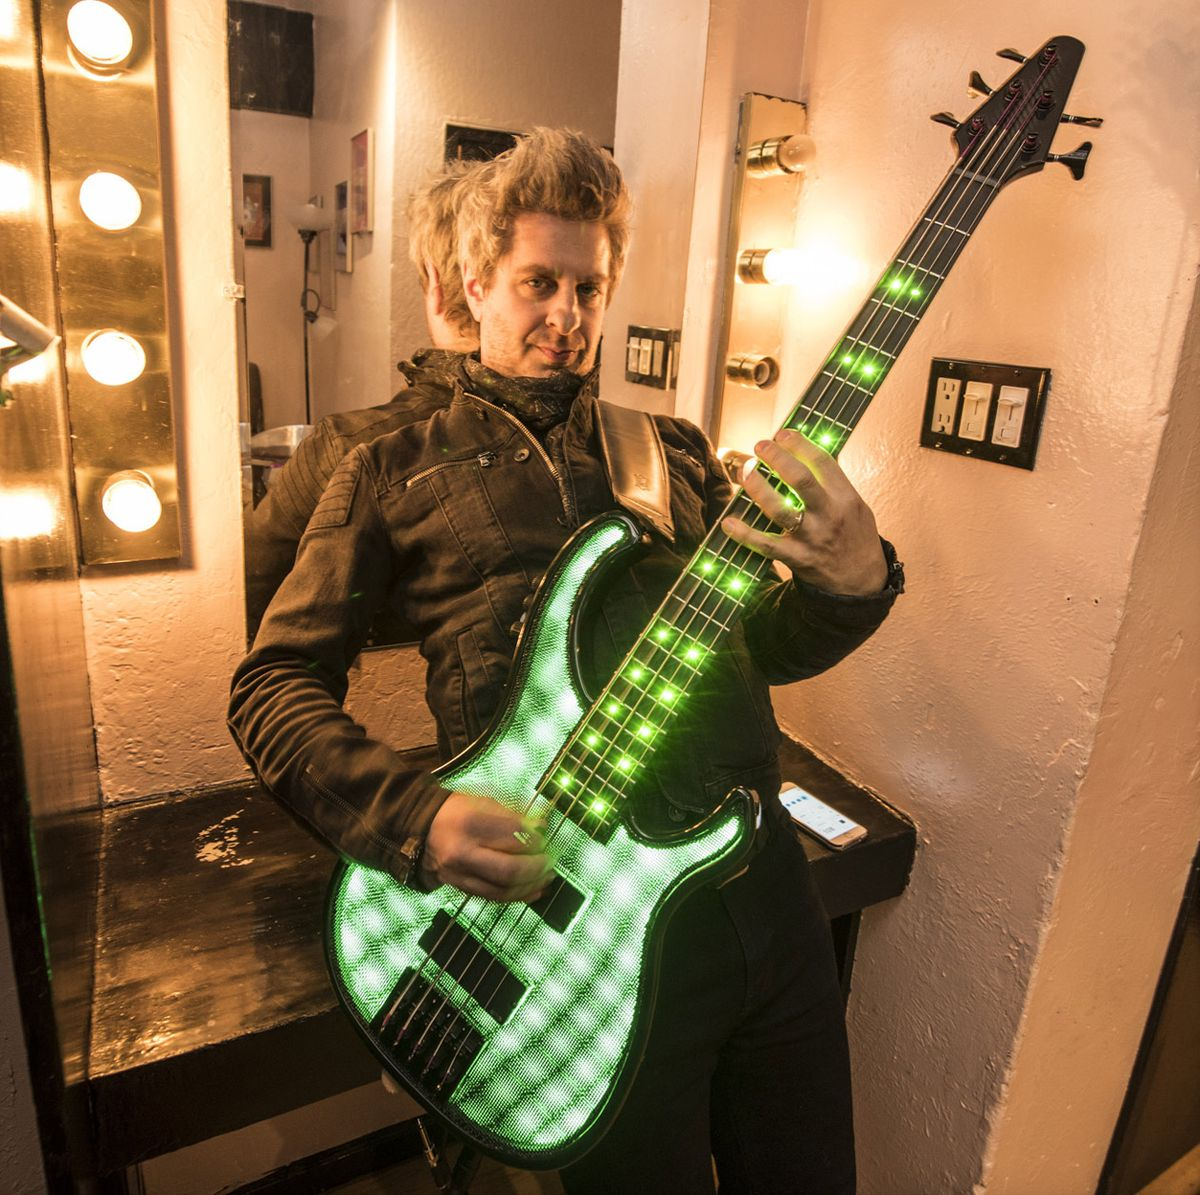 Mike Gordon: Hooks, Bass Lines, and Thinkers